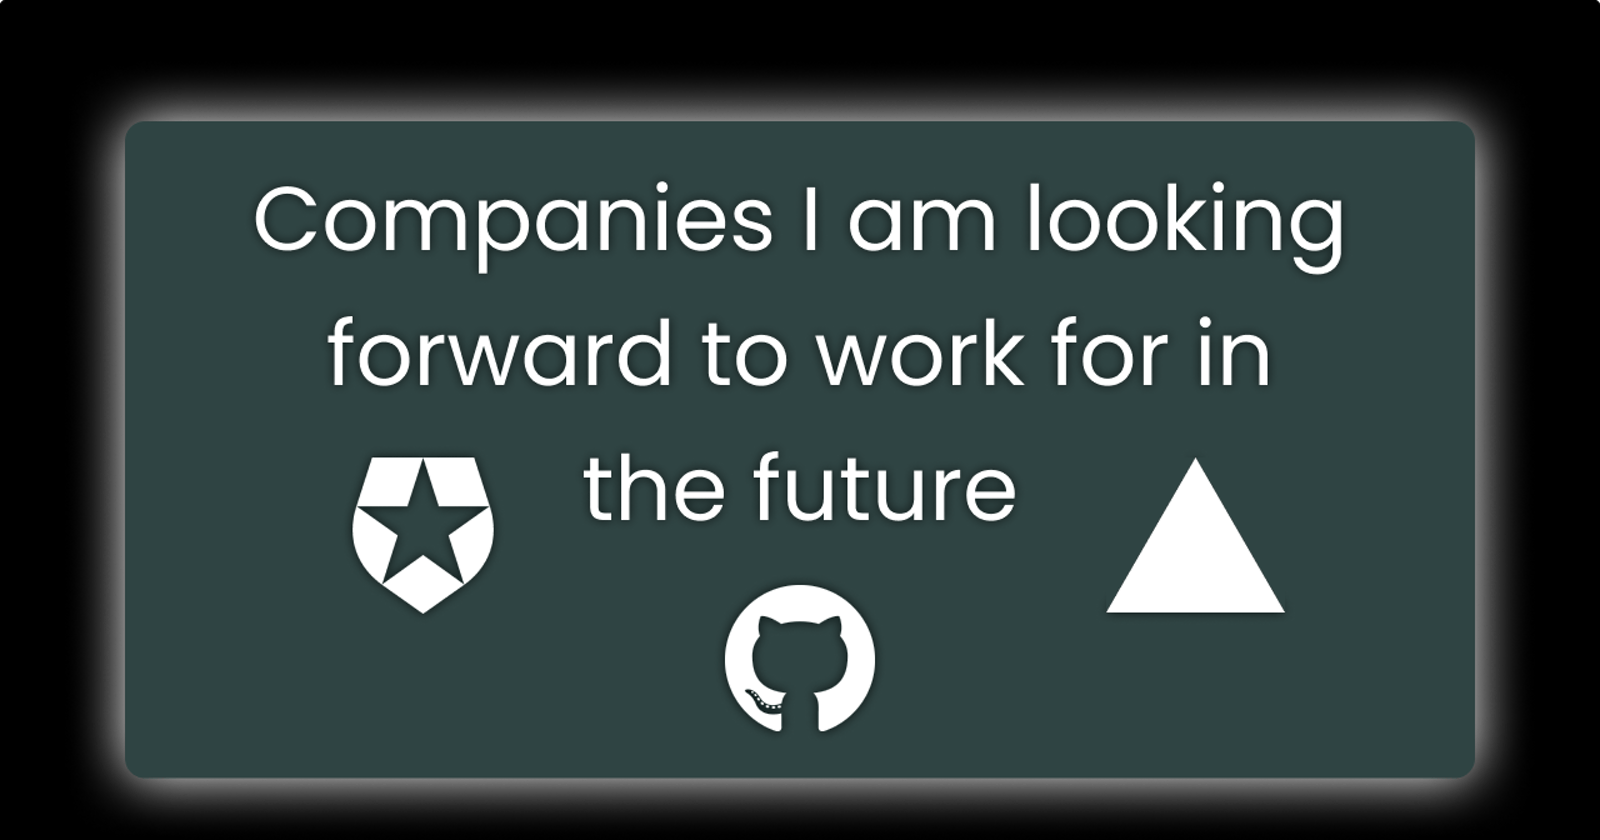 Companies I am looking forward to work for in the future